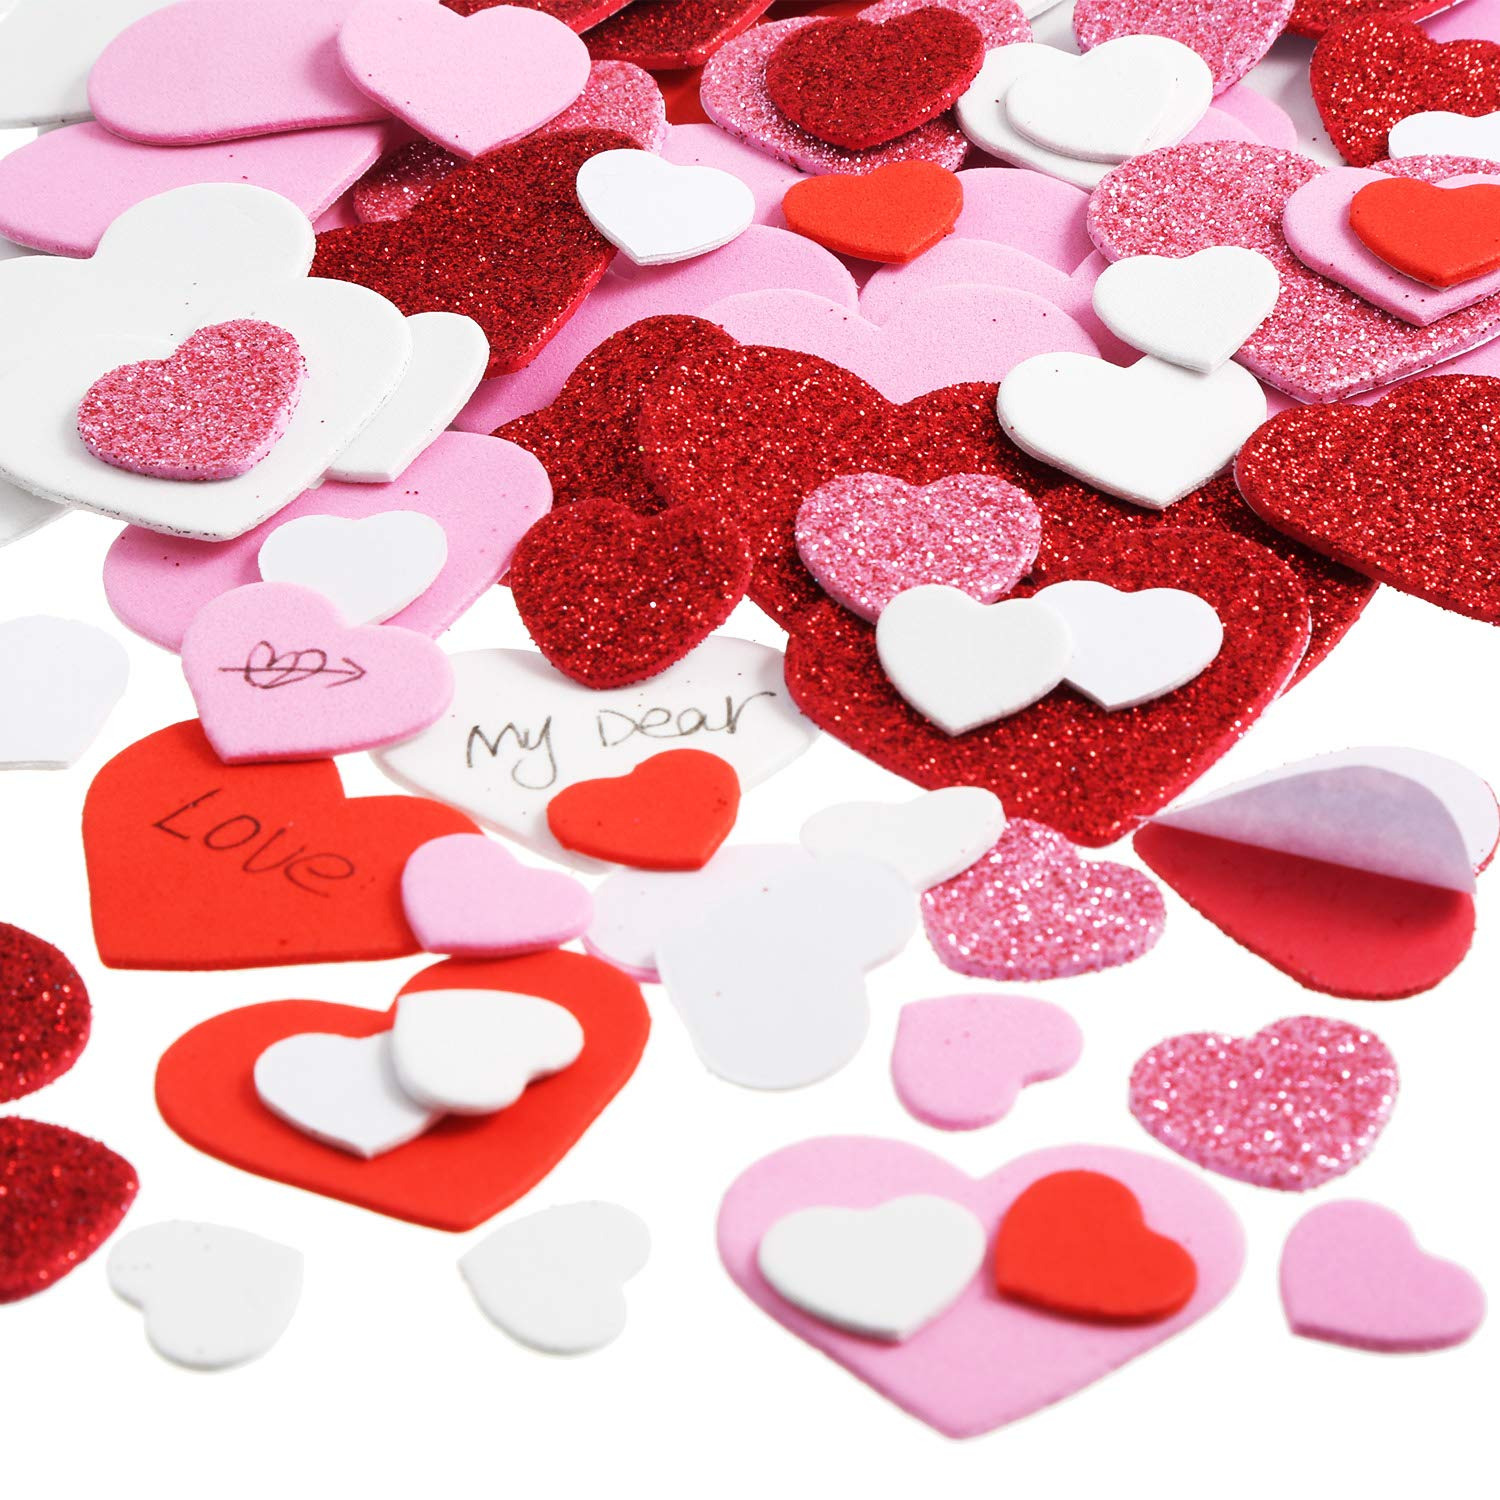 Zhehao 520 Pieces Assorted Heart Shape Stickers Foam Glitter Decals Self Adhesive Valentine Stickers for Valentine's Day Wedding Crafts, 3 Colors in Various Sizes